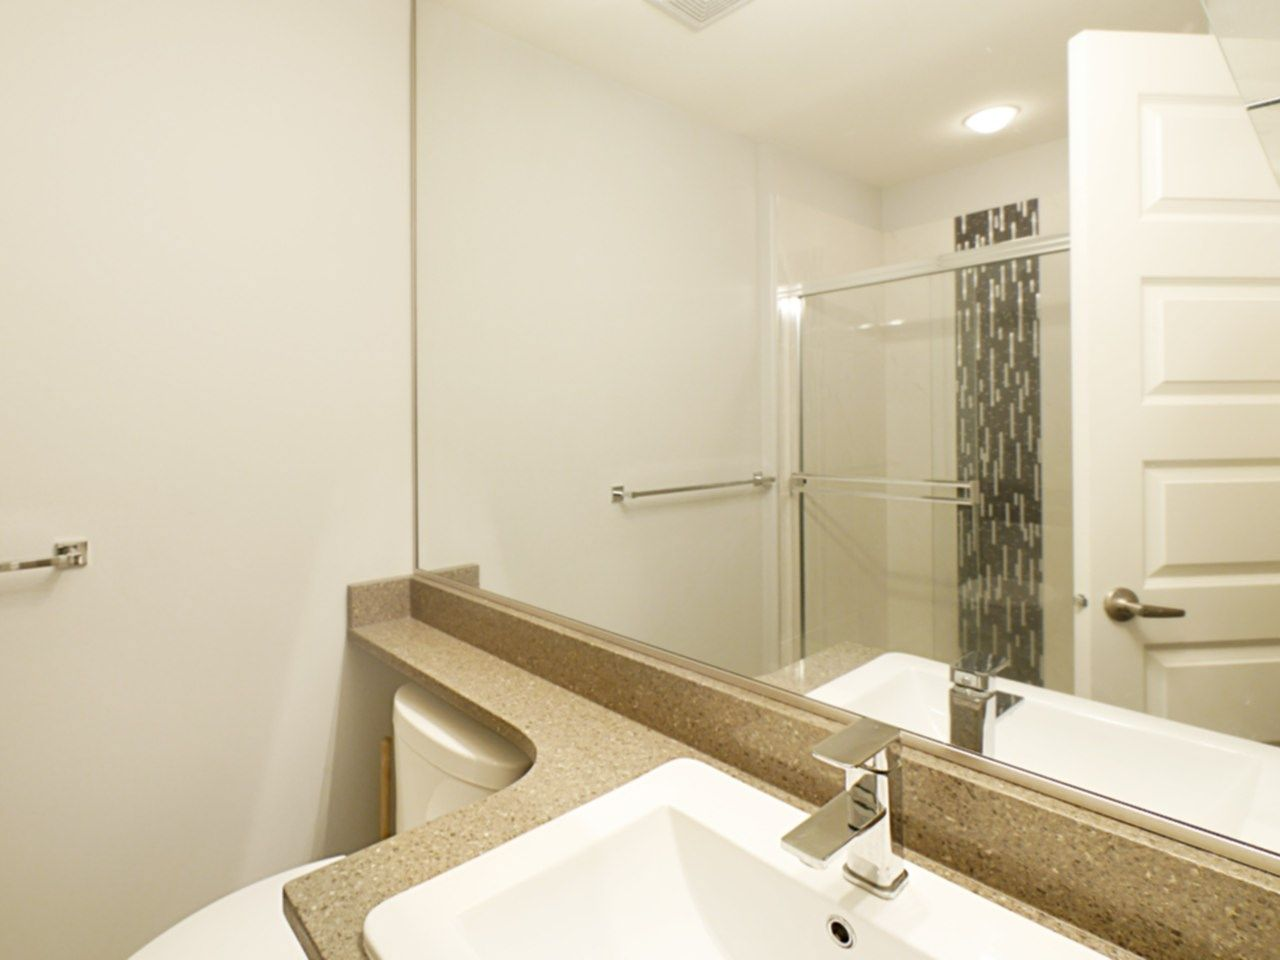 """Photo 15: Photos: 36 19525 73 Avenue in Surrey: Clayton Townhouse for sale in """"Uptown Clayton"""" (Cloverdale)  : MLS®# R2069814"""